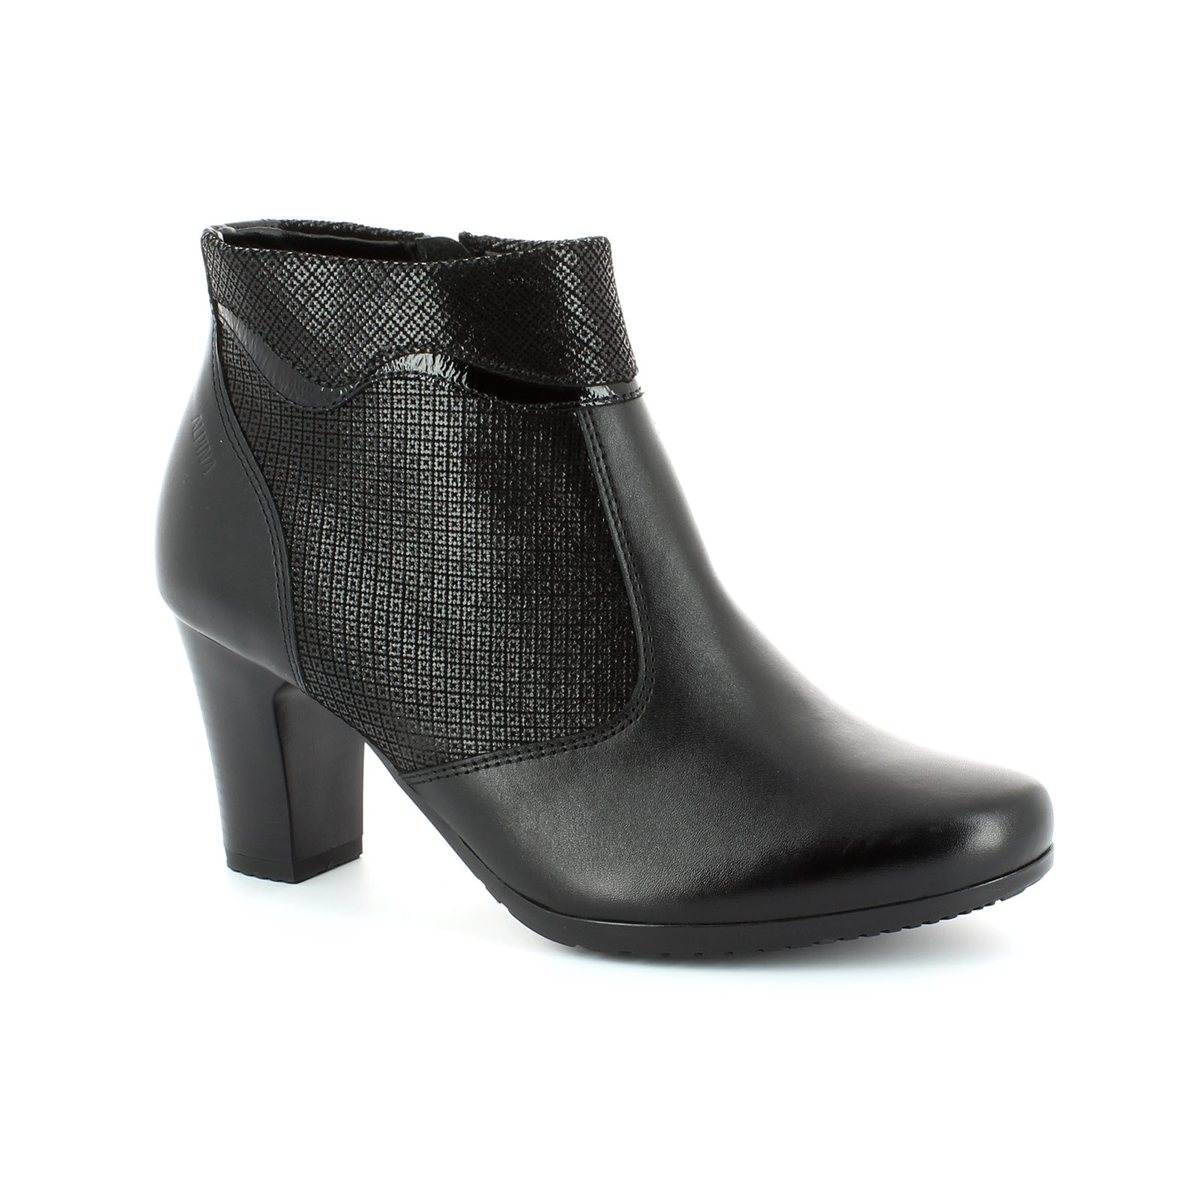 Alpina Romy G Black Ankle Boots - Alpina boots